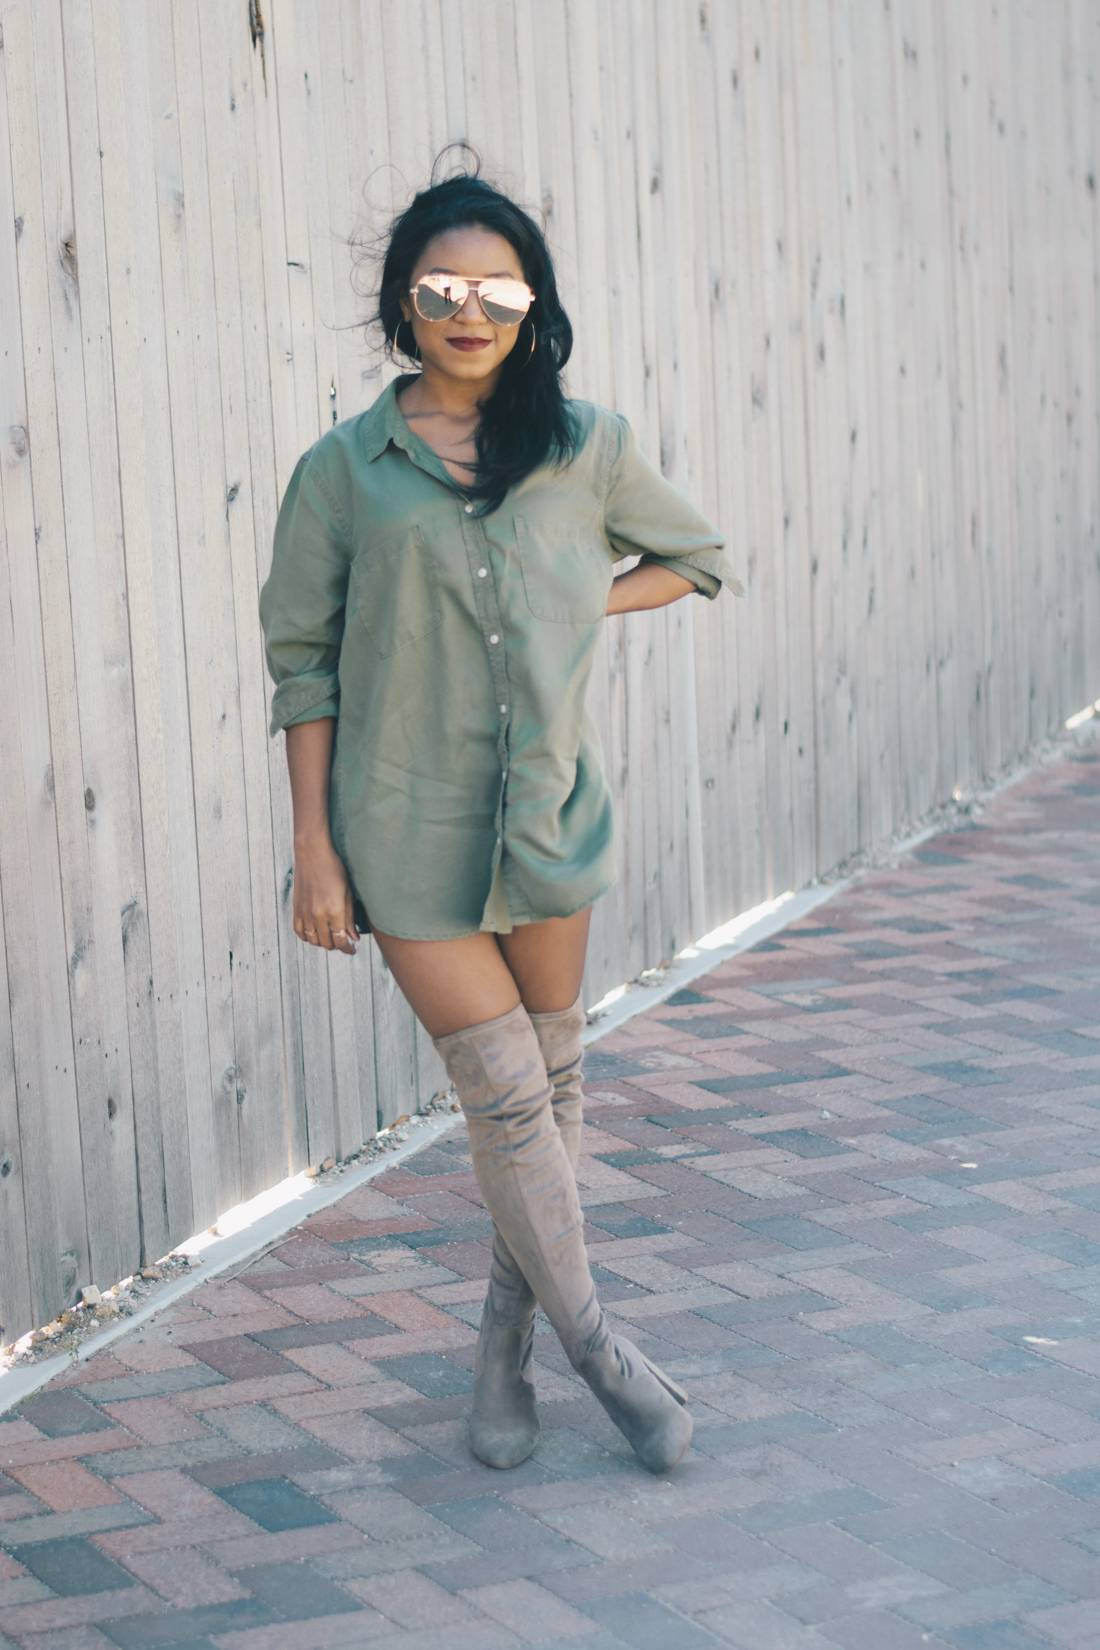 Nude Thigh High Boots And Oversized Shirt 3 Venti Fashion